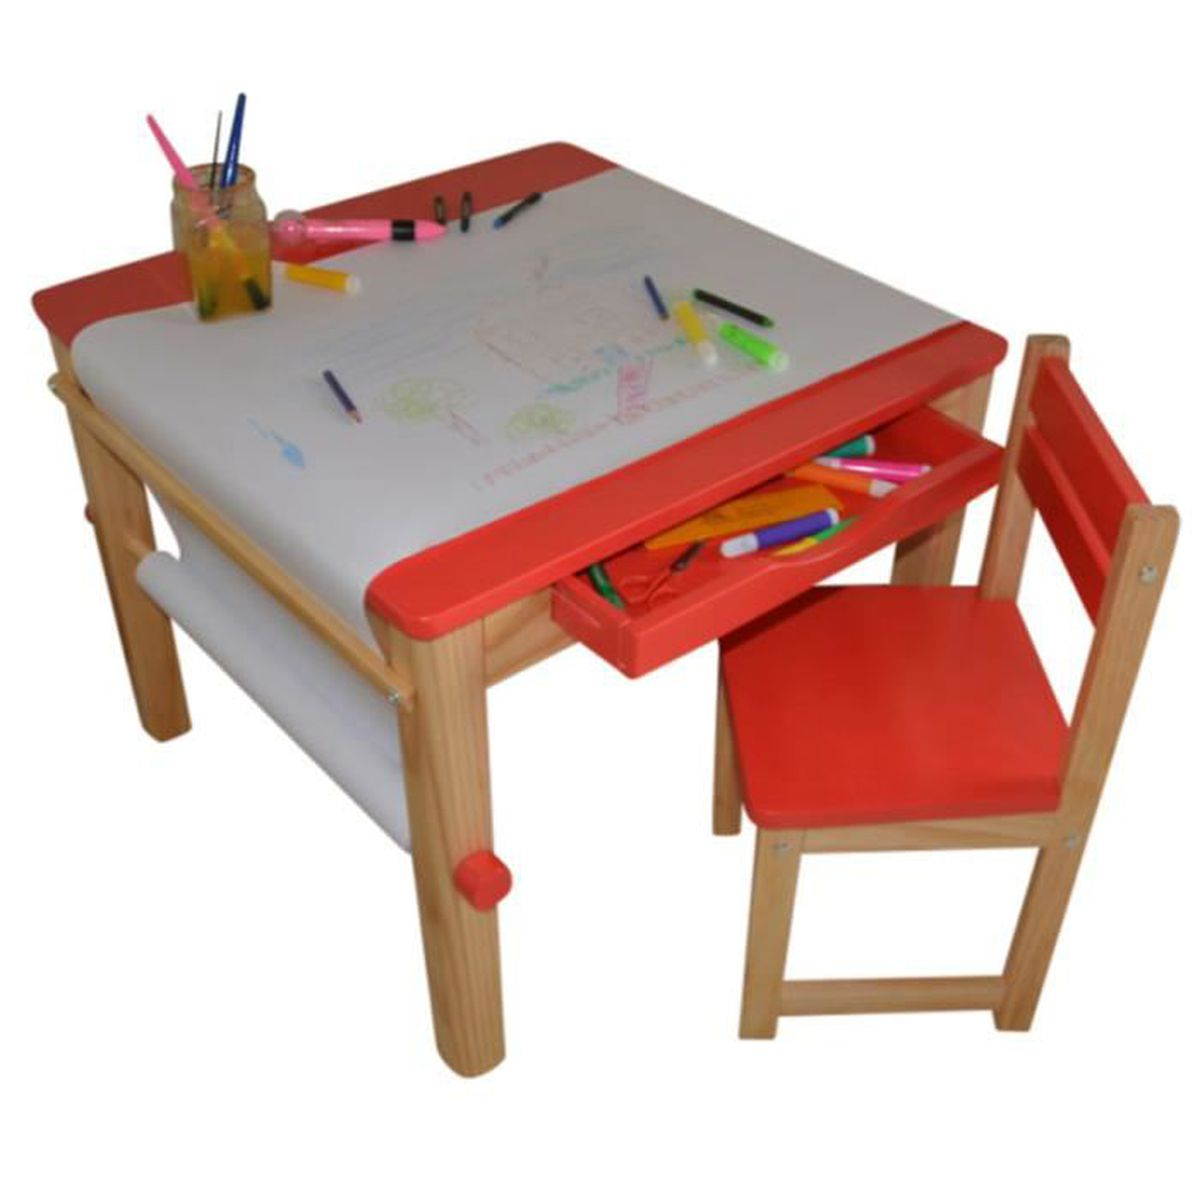 ensemble table et 1 chaise pour enfant en bois coloris rouge achat vente tour de lit b b. Black Bedroom Furniture Sets. Home Design Ideas